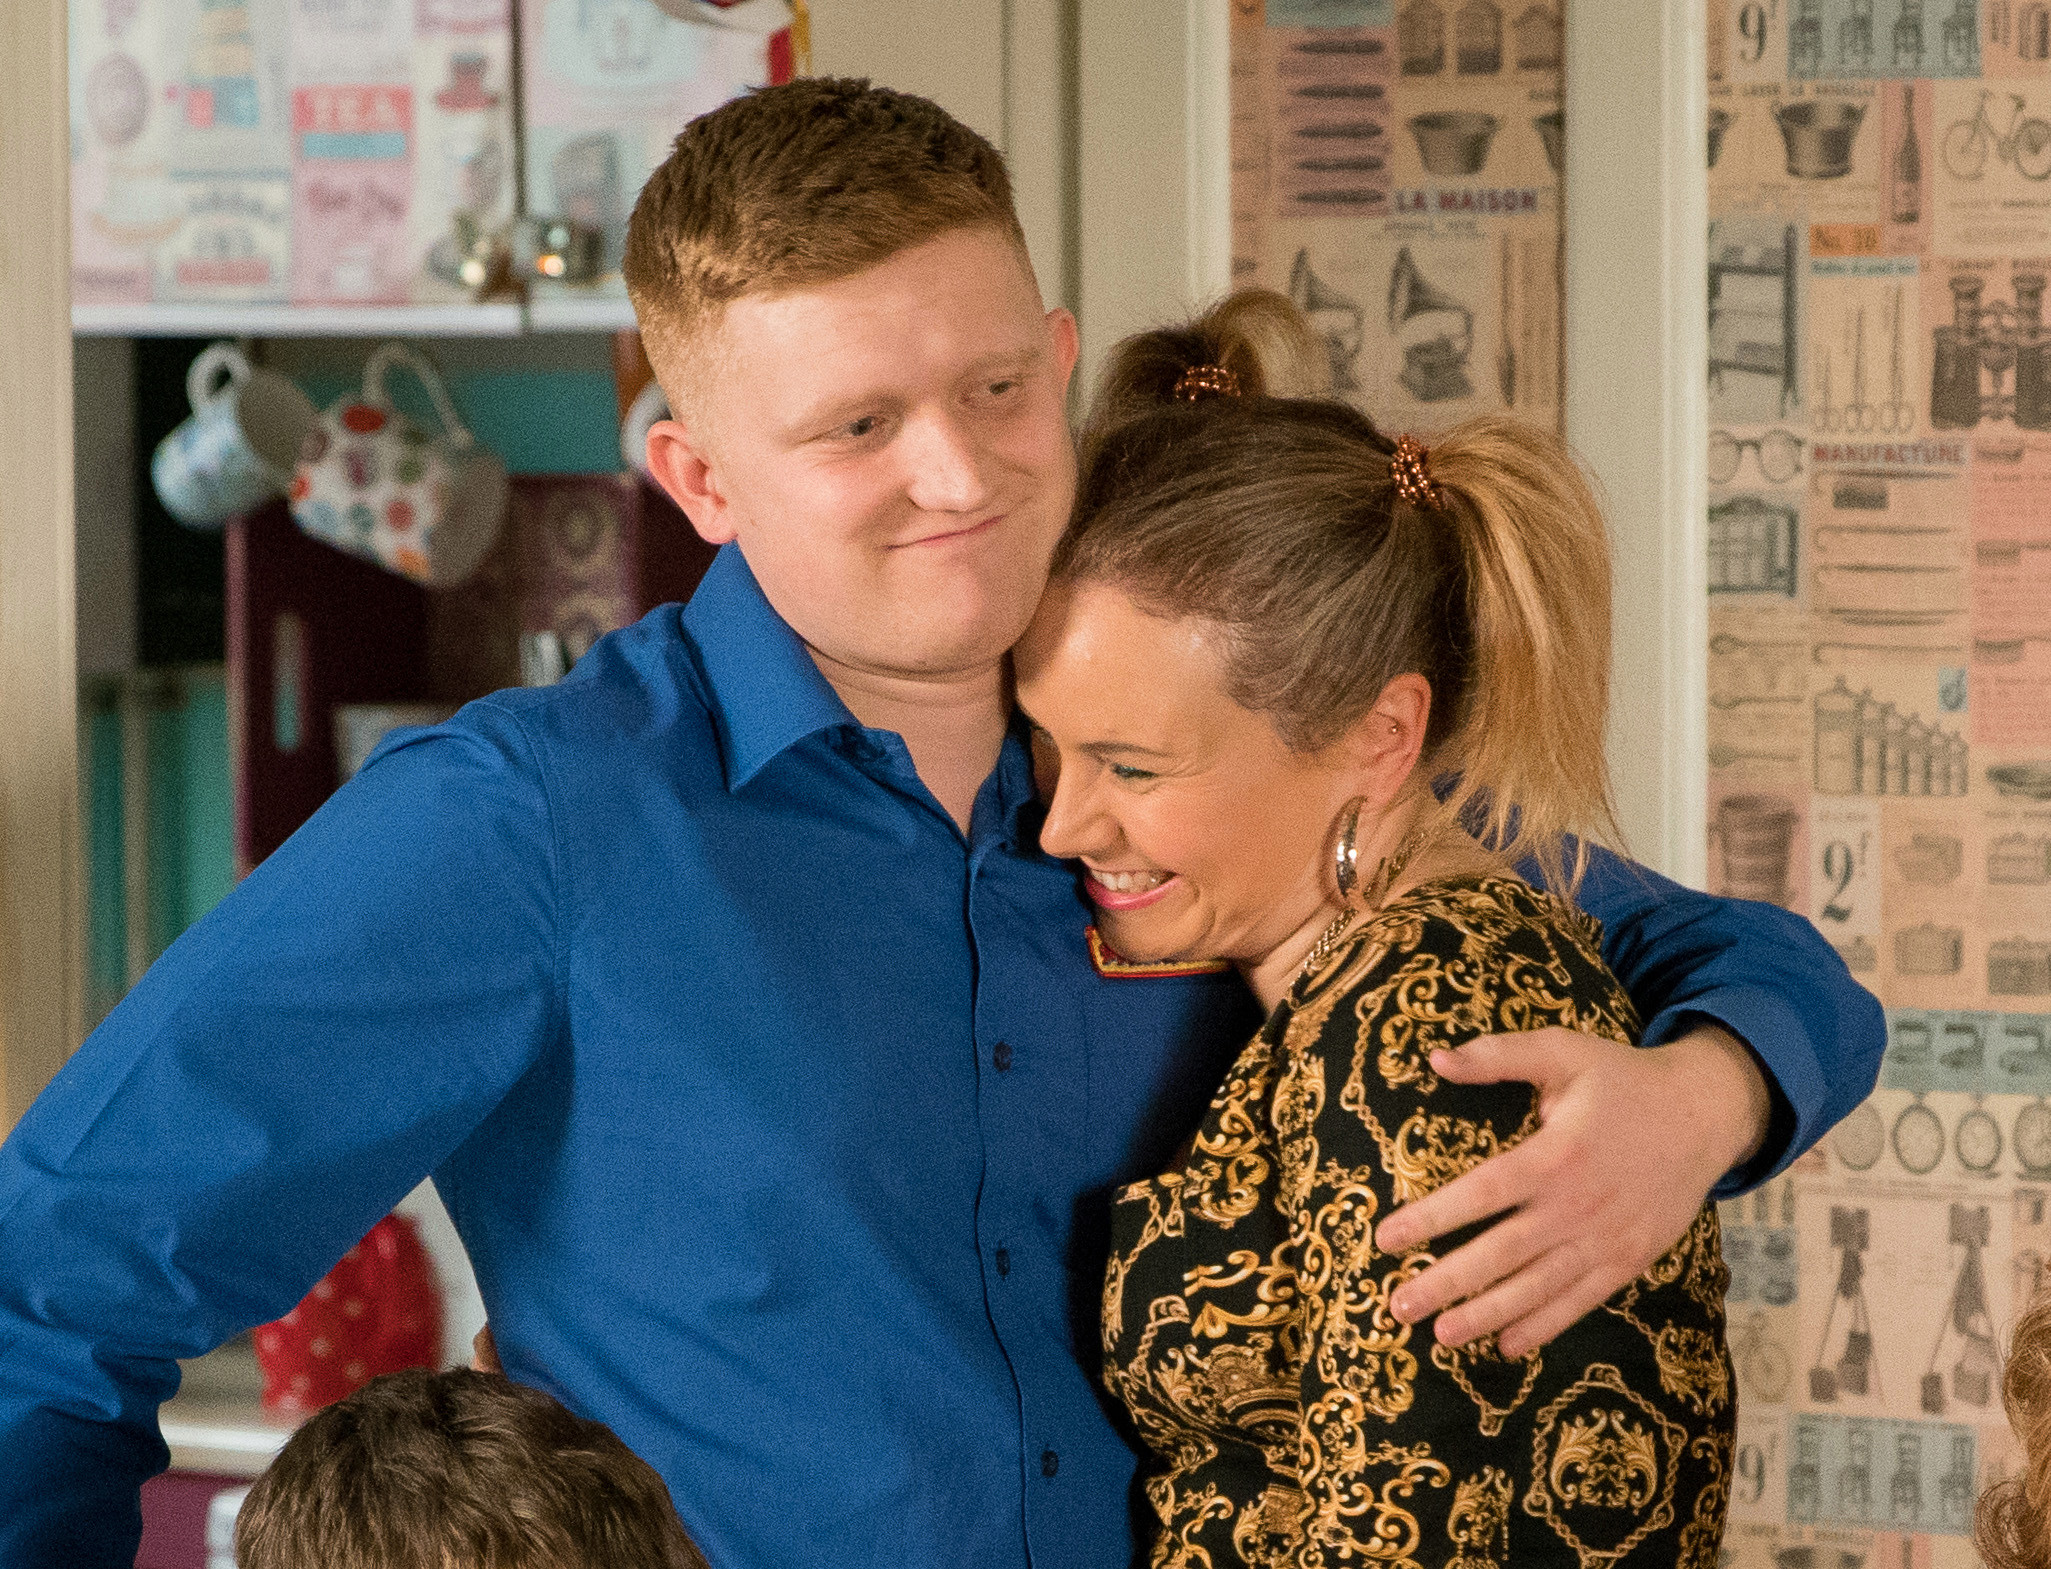 Coronation Street SPOILER: Chesney proposes to Gemma?